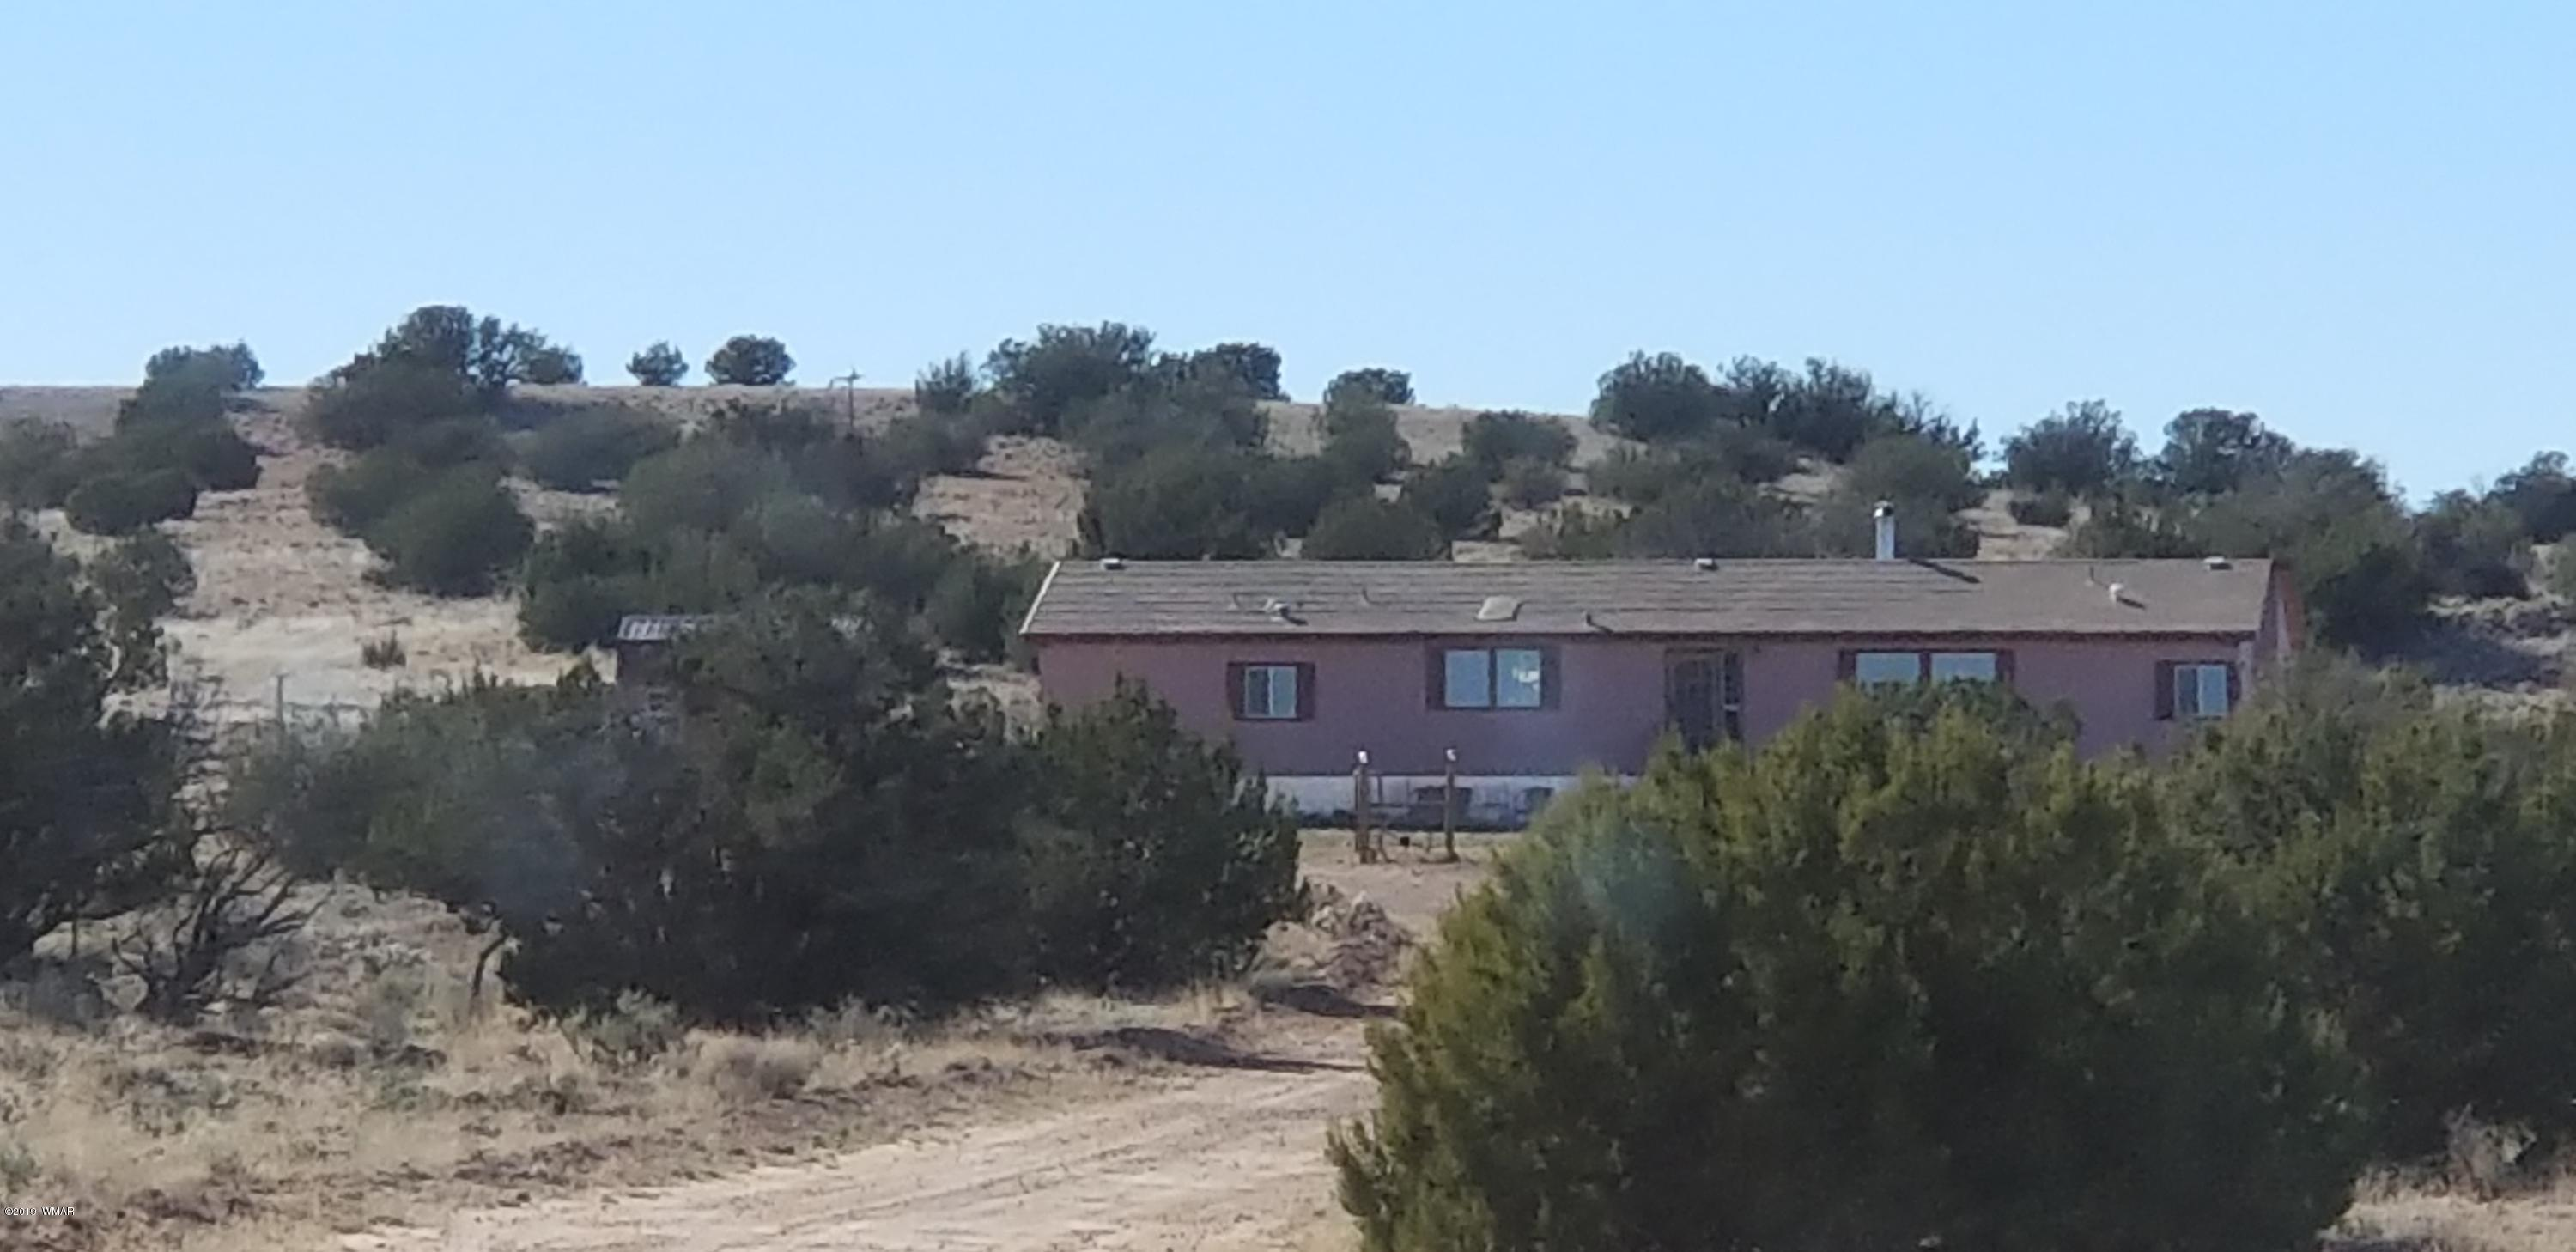 Off the grid homestead, this house is a must see! All solar & water systems are running. Privacy w/amazing views. Full 37-ac with desert wildlife & exploration. Sits on a corner tract w/over 1/2 mile of road frontage. 3+ acres are fenced, also fenced livestock areas with a 4 stall goat/sheep pallet barn & a fenced/netted chicken run w/converted camper coop. The laying flock & milking goats are available for purchase. The home has 3BR & 2BA w/bonus room. 2010sf w/26 exterior walls & well insulated drywall inside & texture throughout. Remodeled in 2016 w/Pergo laminate flooring, new carpet in BR's, Granite countertops w/hammered copper farmhouse kitchen sink, double inlaid copper sinks in guest BA, basin sinks w/fountain faucets in MBA, slate & travertine hearth area w/wood burning stove,